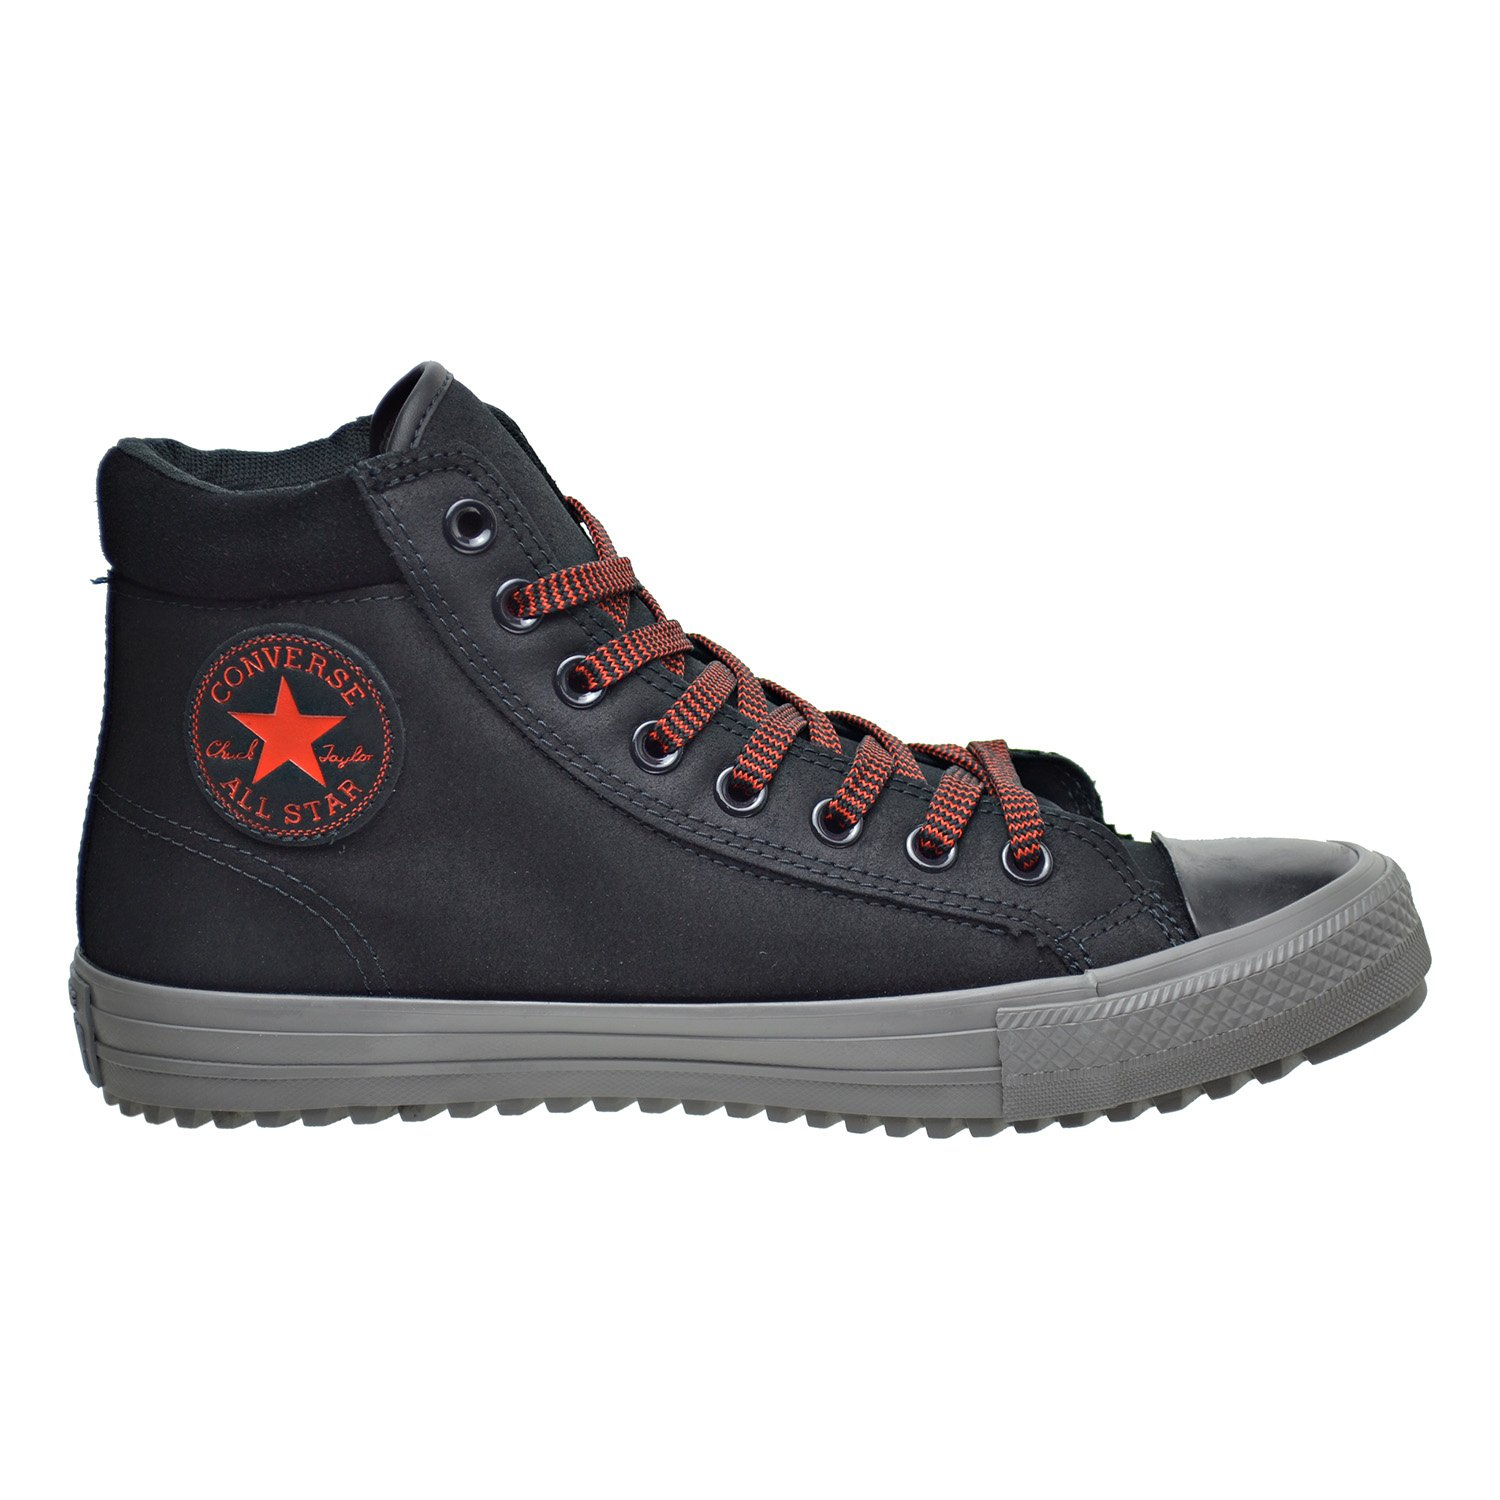 fa77da7d4c5 Amazon.com | Converse Chuck Taylor All Star Boot PC HI Black/Charcoal  Grey/Signal Red (4 D(M) US) | Boots